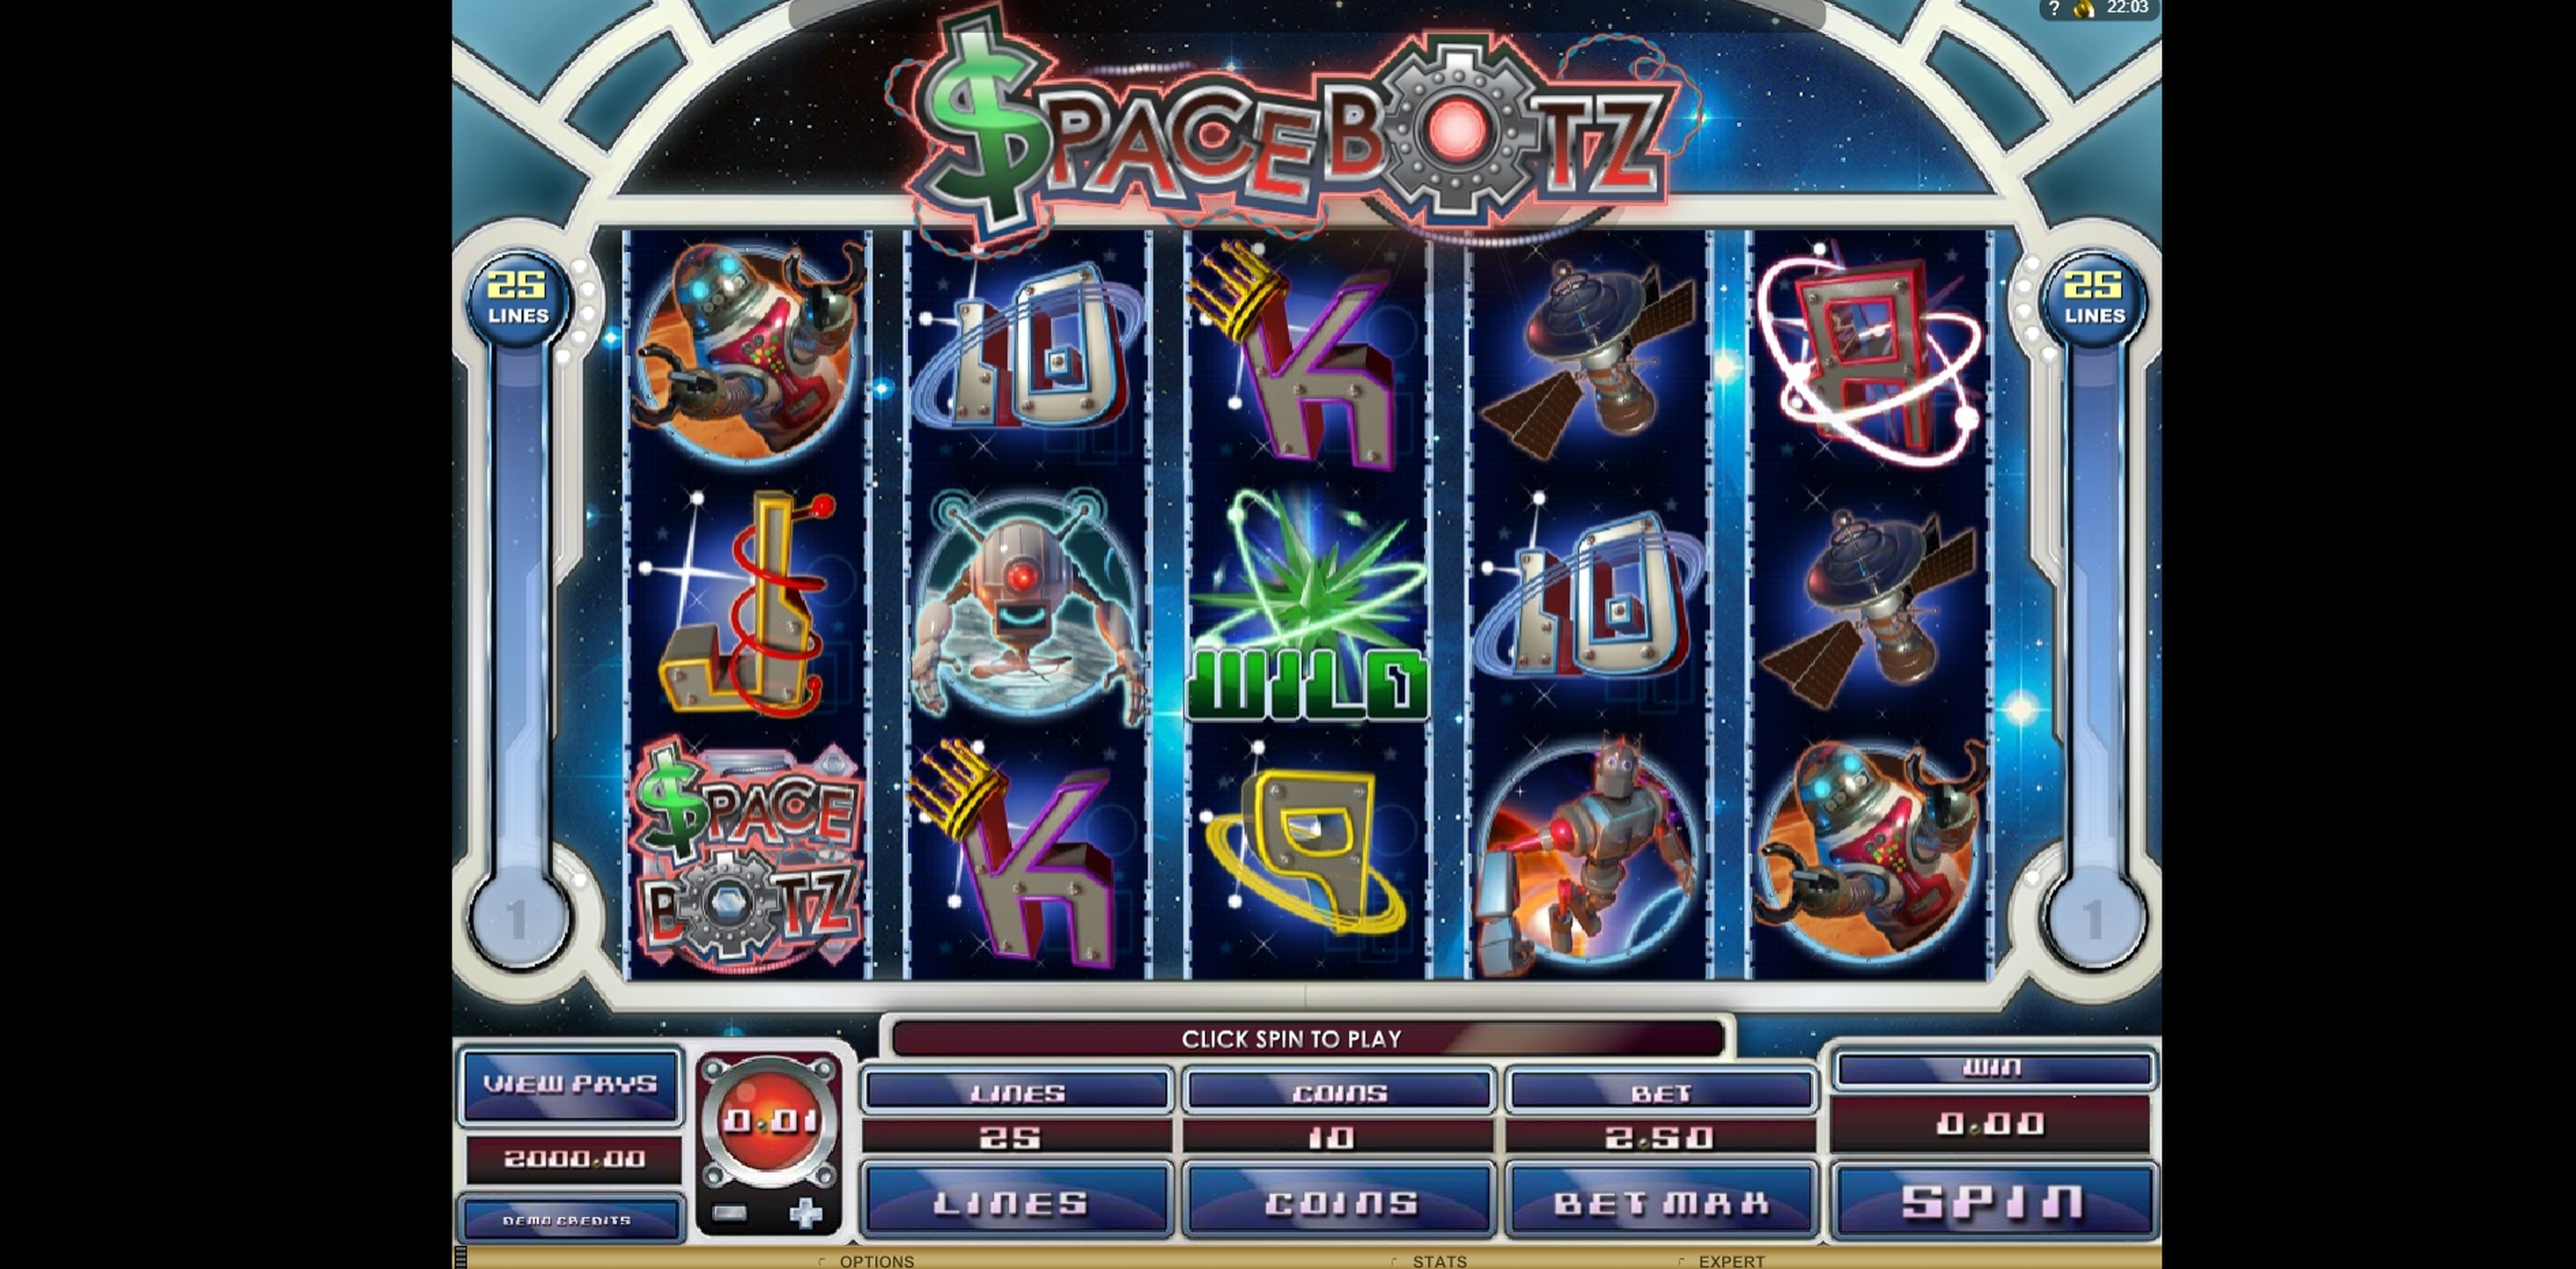 Reels in Space Botz Slot Game by Genesis